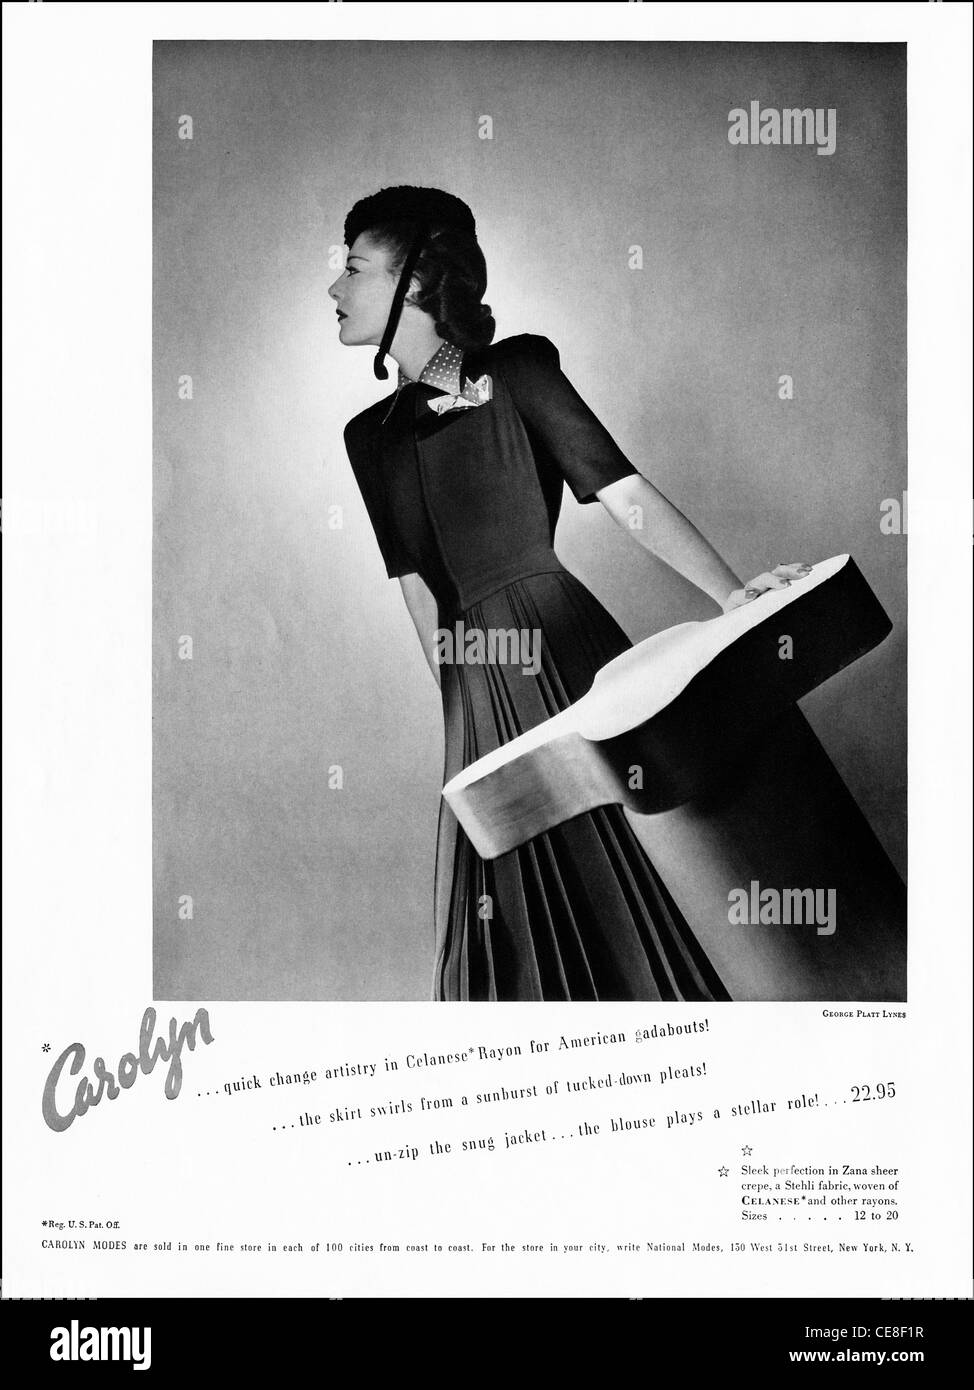 Original full page advert circa 1938 in American ladies fashion magazine advertising dresses in Celanese Rayon fabric - Stock Image